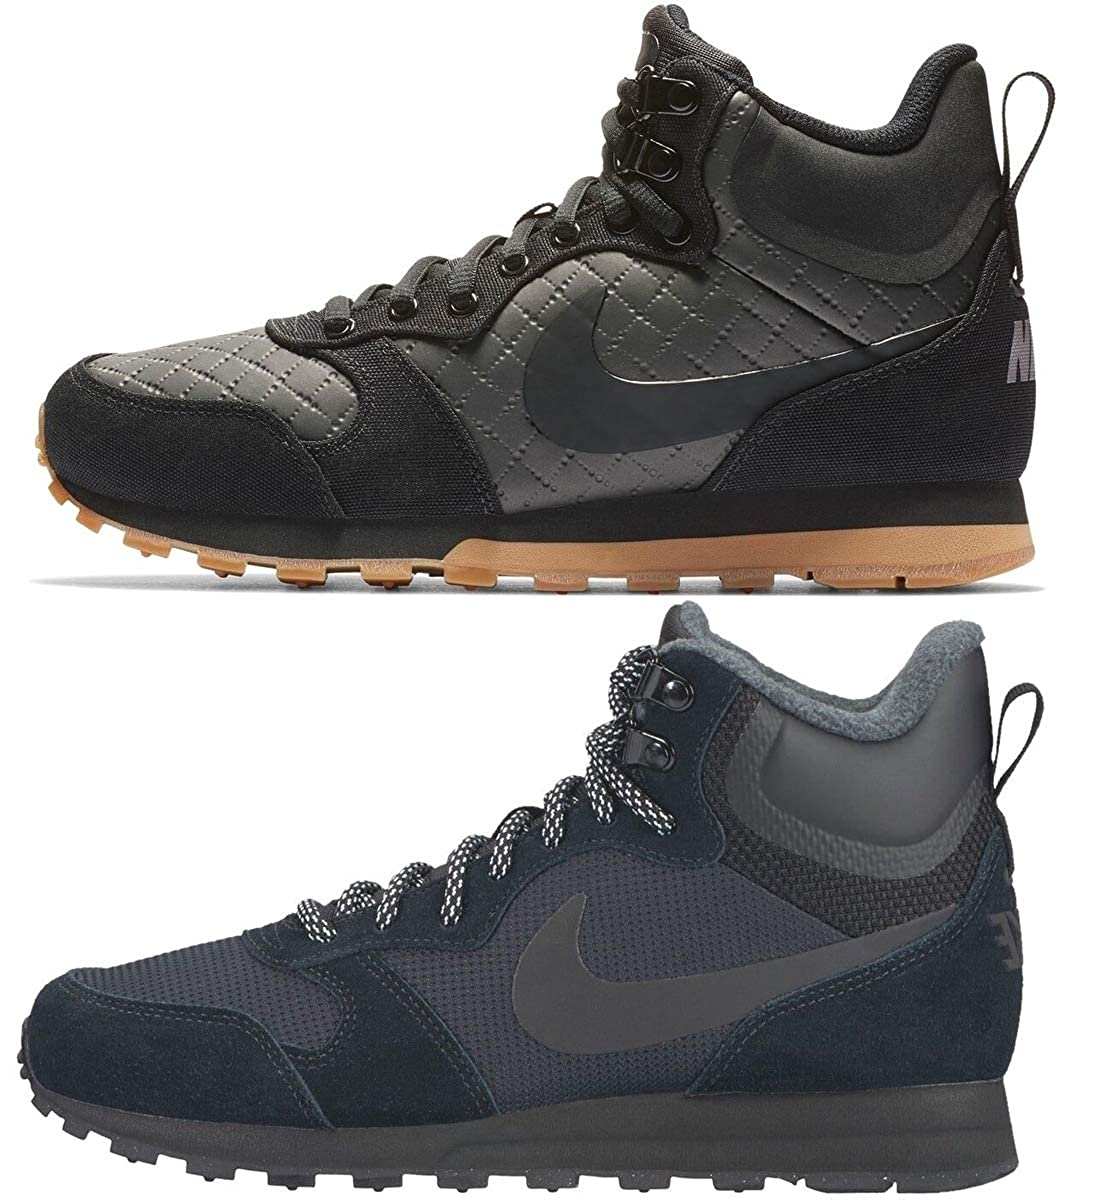 Women's Nike Internationalist Mid Availability: Out of stock $100.00